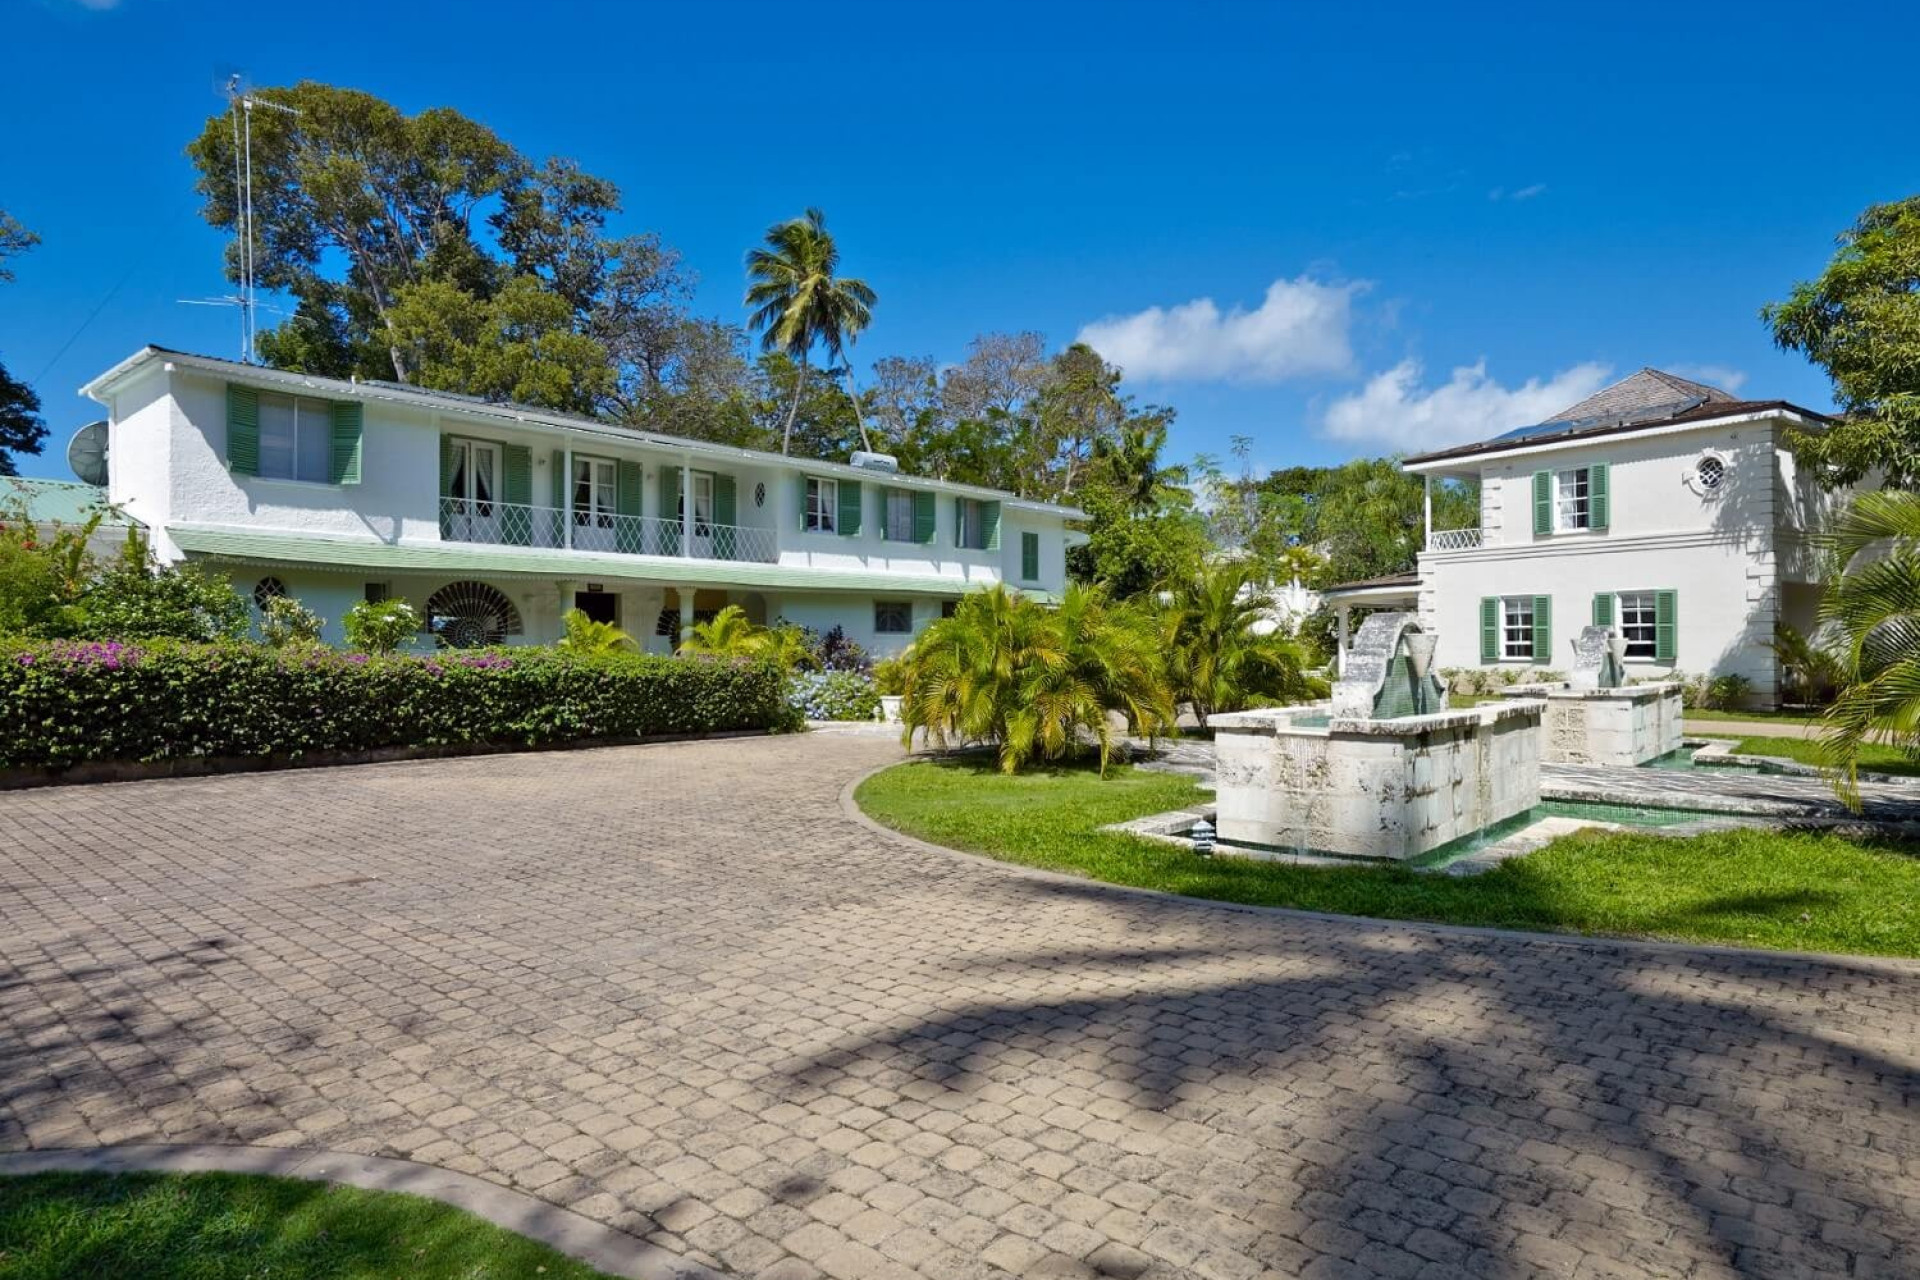 Driveway and Fountains of 8 Bedroom Beachfront in St James with Speed Boat & Private Pool